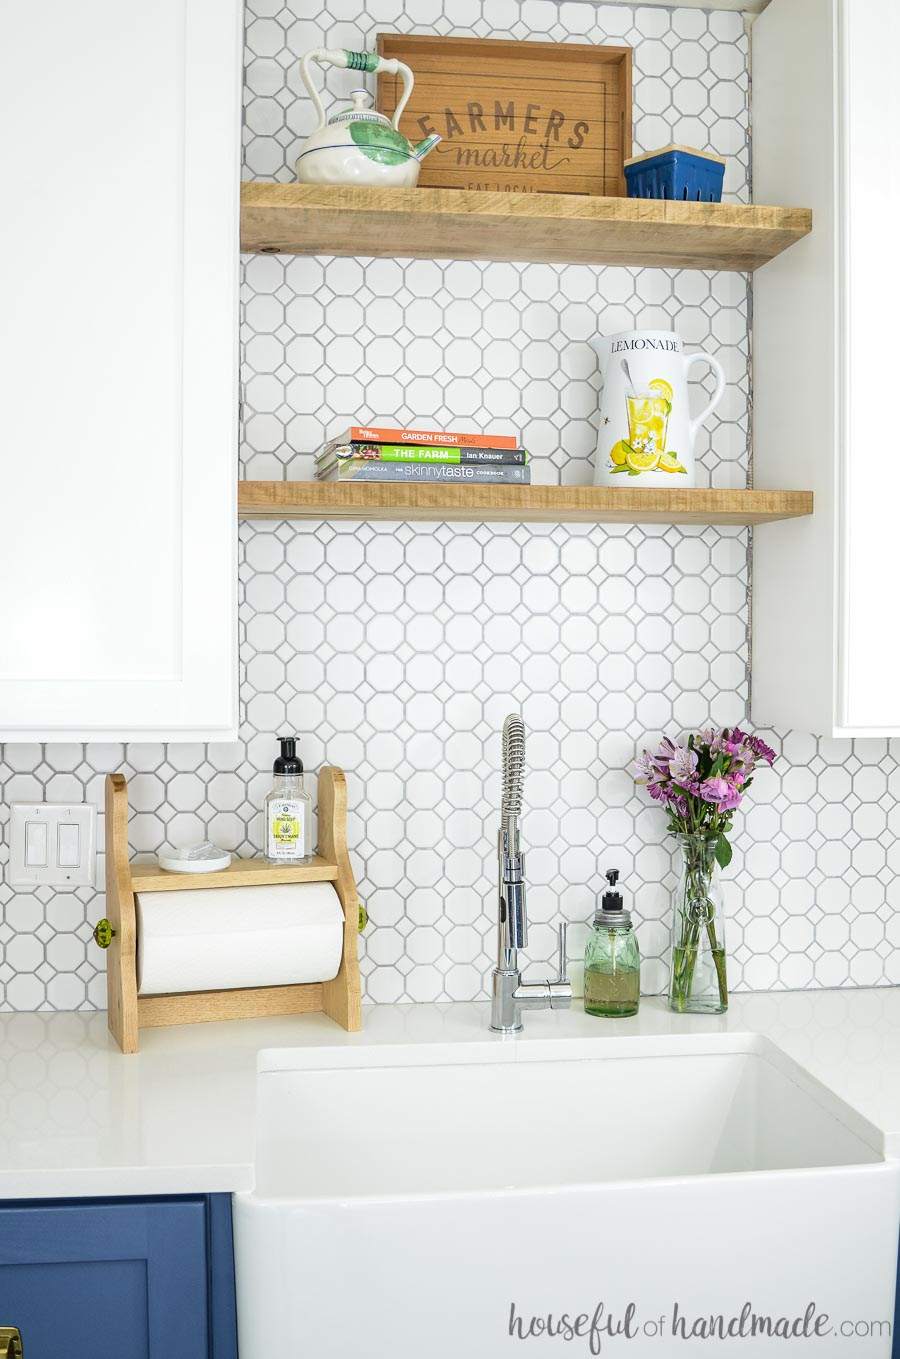 Create a farmhouse kitchen with open shelves, a farmhouse paper towel holder, Farmers market tray and more. Housefulofhandmade.com